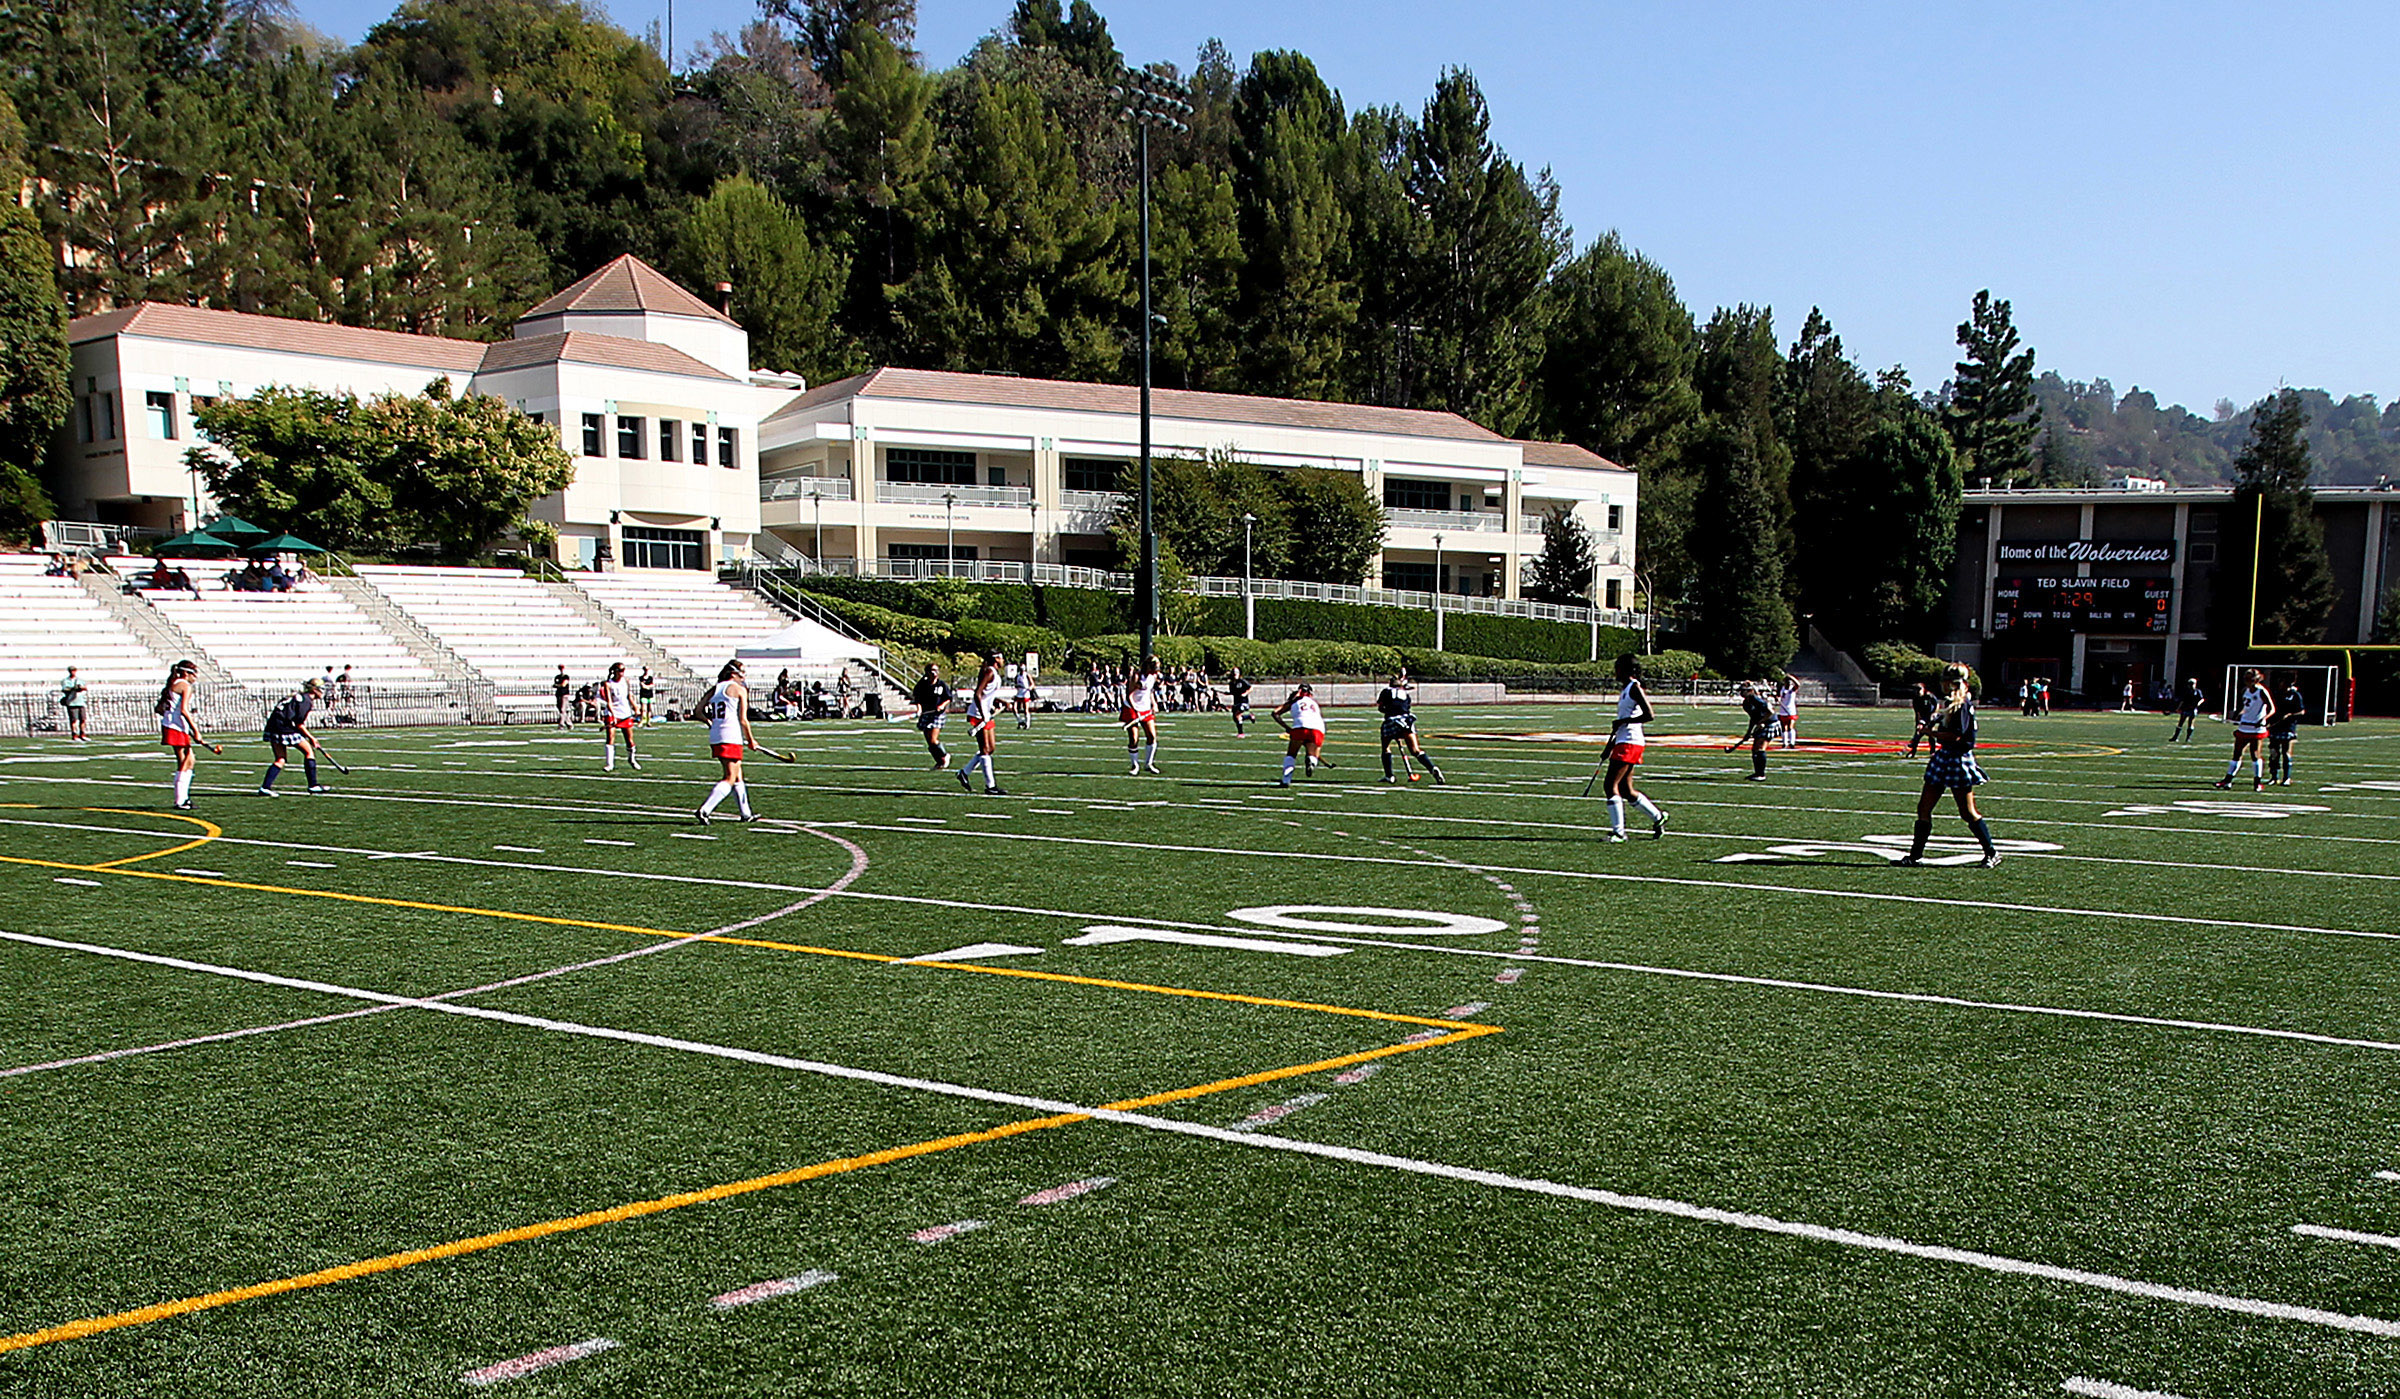 Girls play a game of field hockey on the athletic fields of  Harvard-Westlake School, an independent coeducational college preparatory day school, with grades 7-12, in Studio City. It costs about $40,000 a year for tuition, and boasts a high success rate in getting kids admitted into Ivy League universities.  (Photo by Luis Sinco/Los Angeles Times via Getty Images)